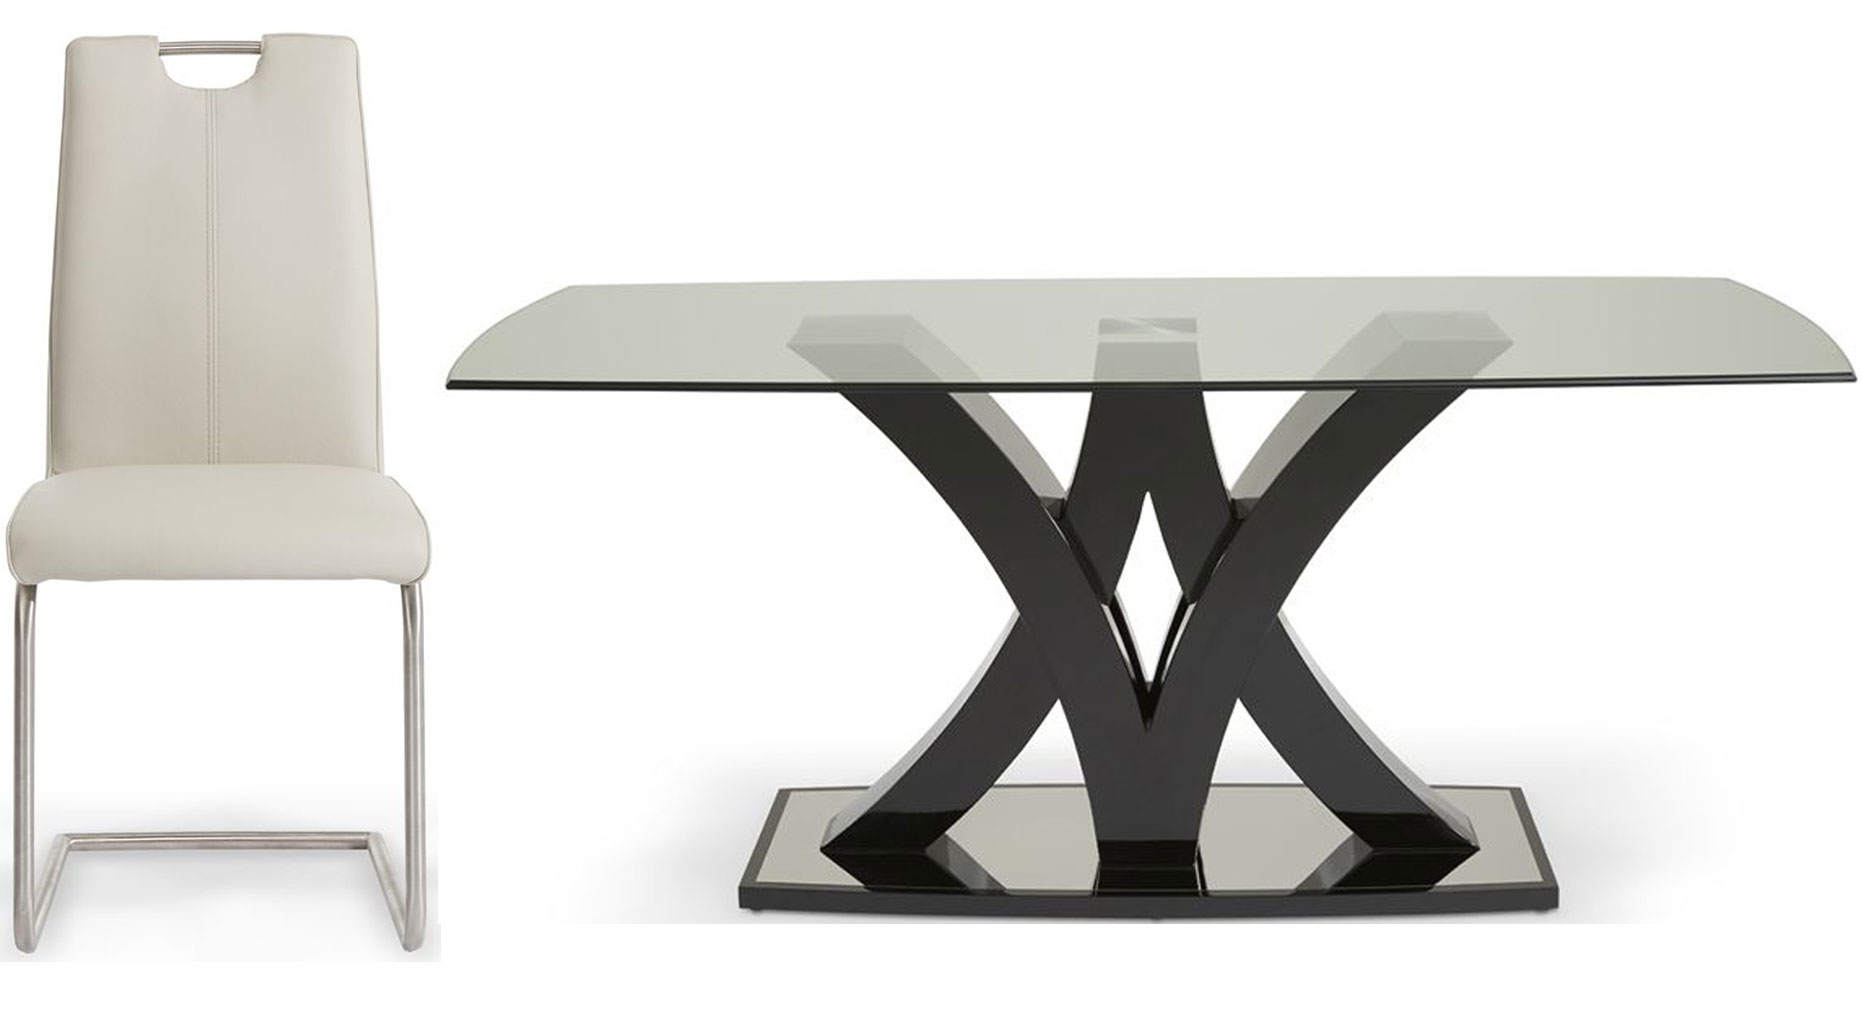 Serene Barcelona Glass Dining Table and 4 Malaga Chairs - Black and Taupe Faux Leather